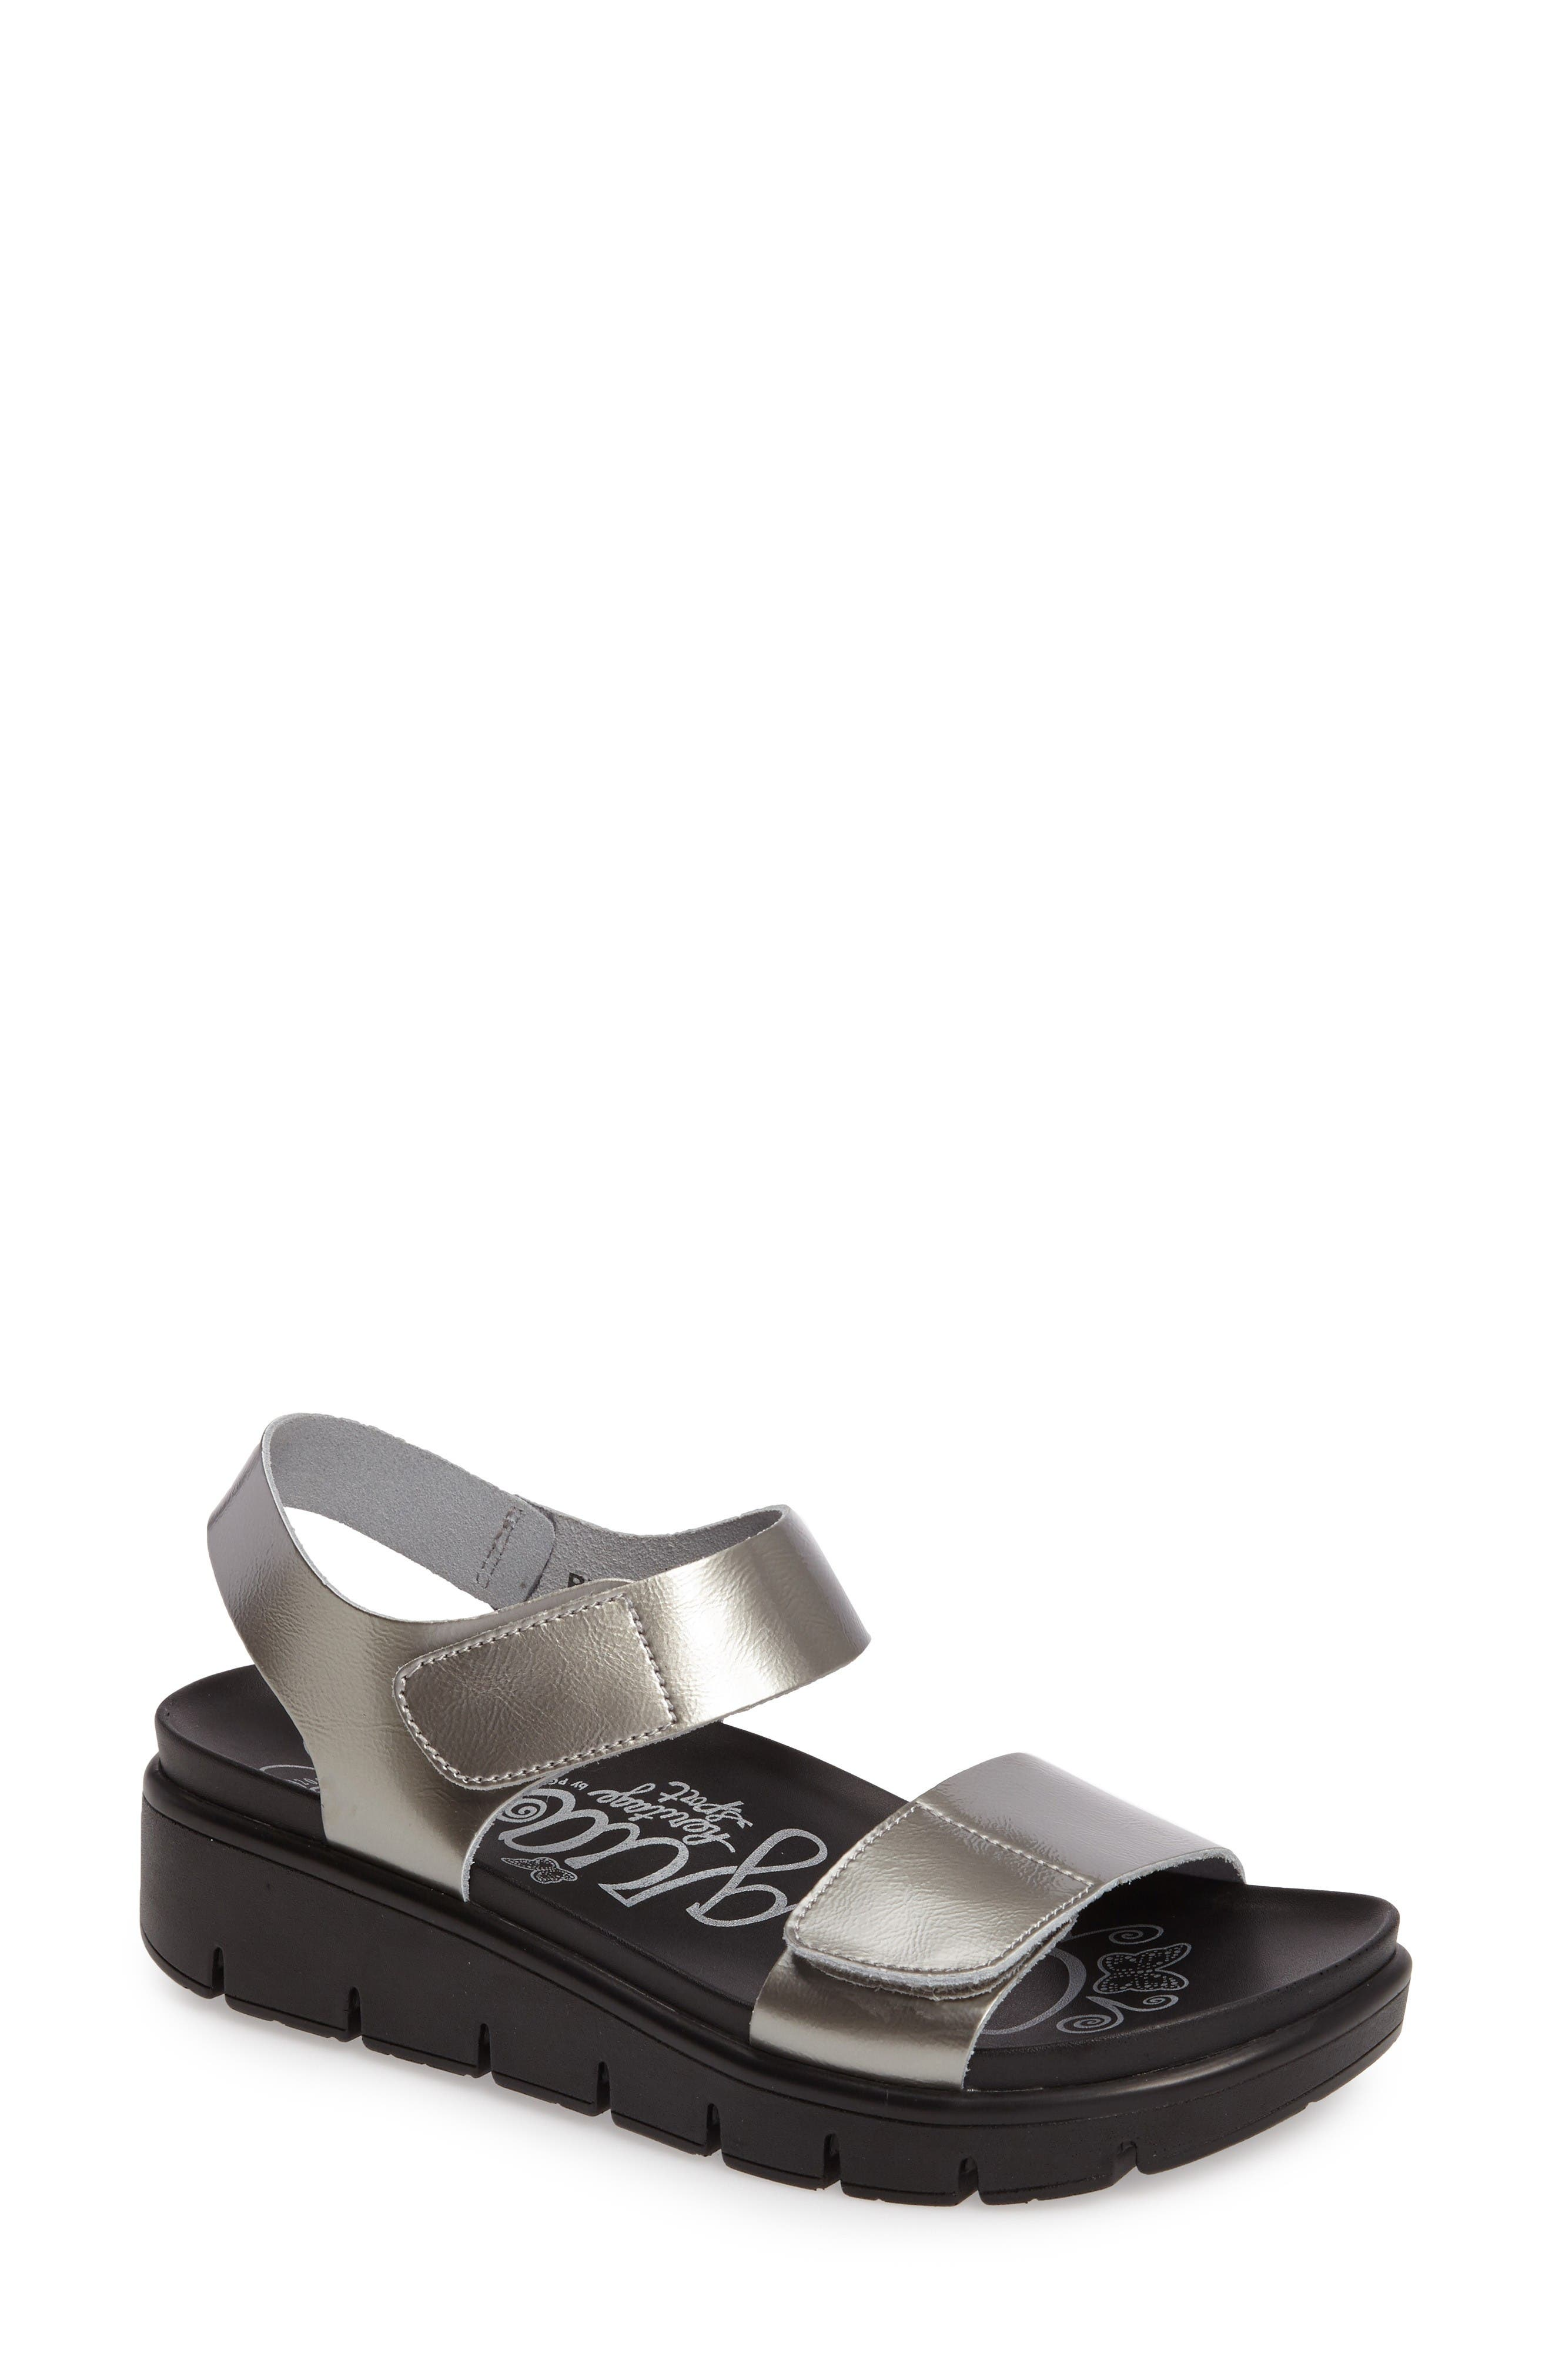 Playa Sandal,                         Main,                         color, Pewter Patent Leather